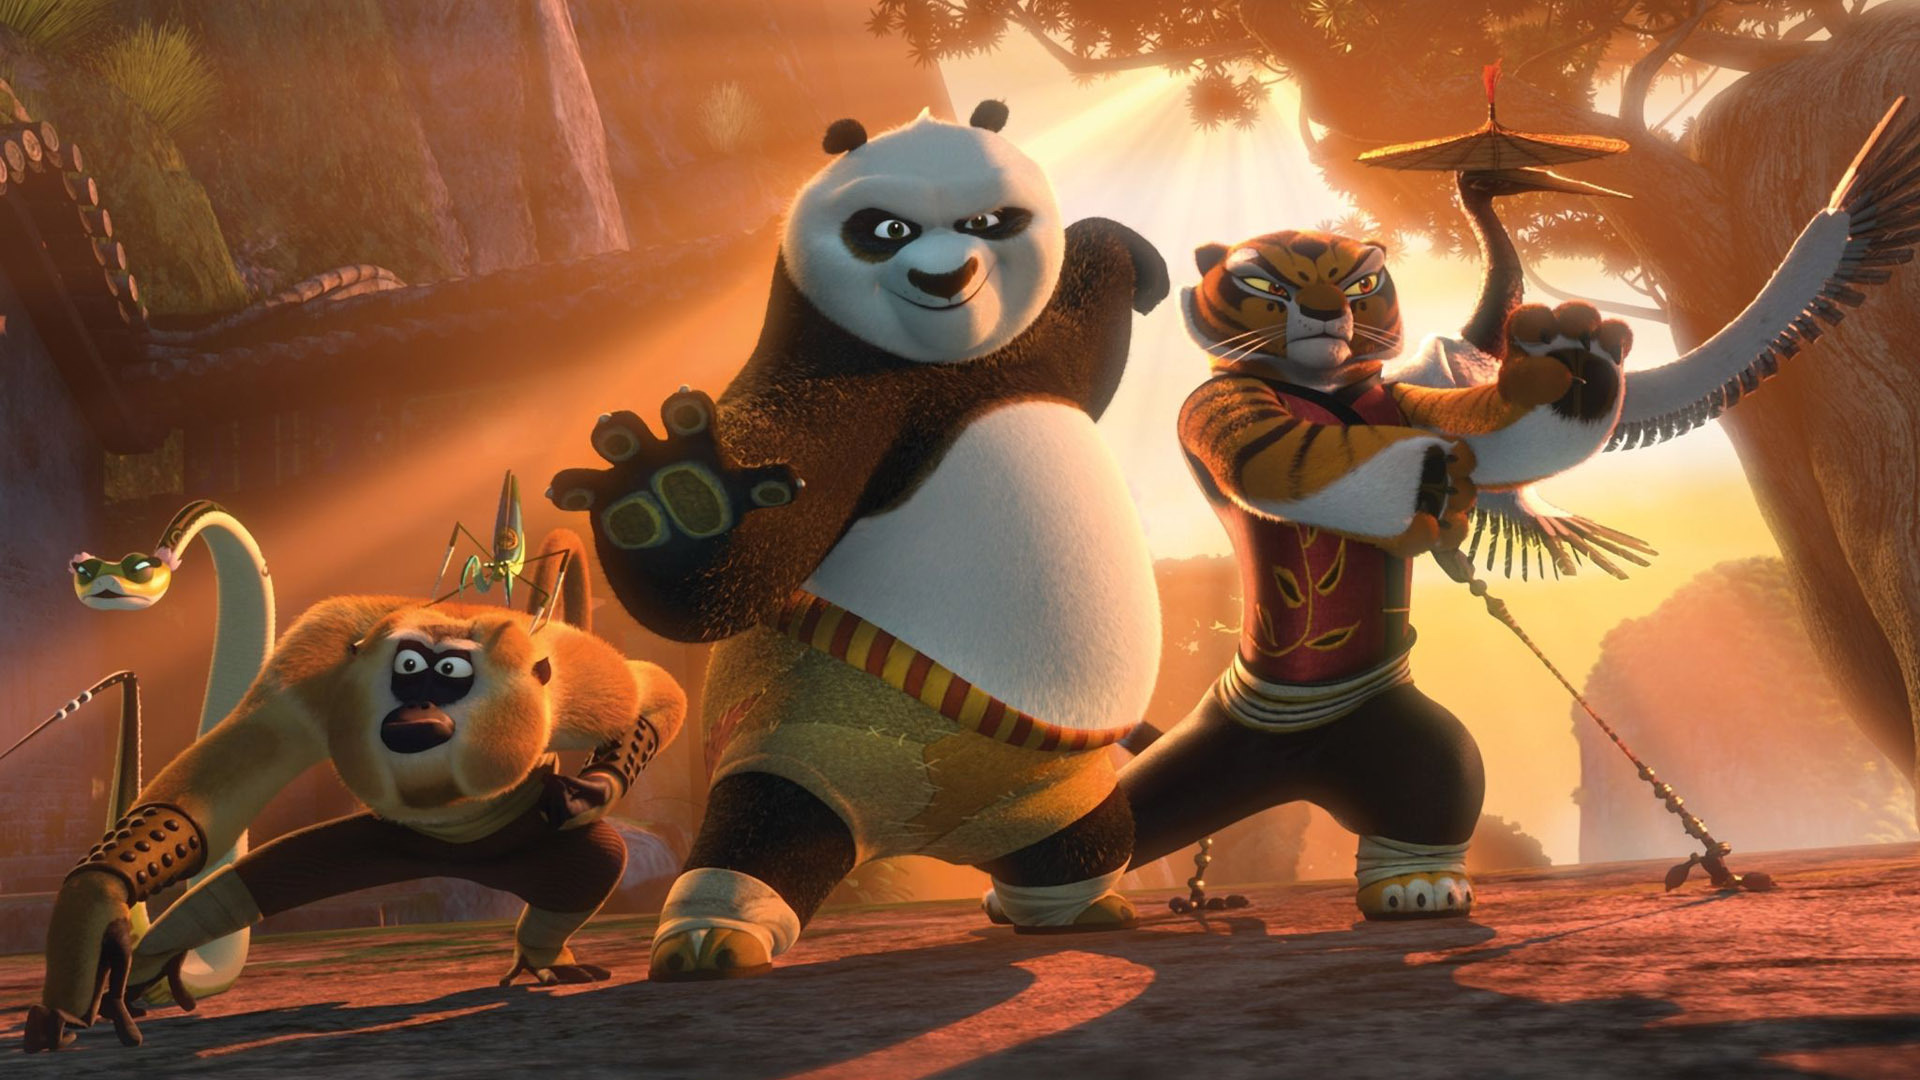 Kung Fu Panda Wallpapers With Quotes Kung Fu Panda Wallpapers Hd Pixelstalk Net